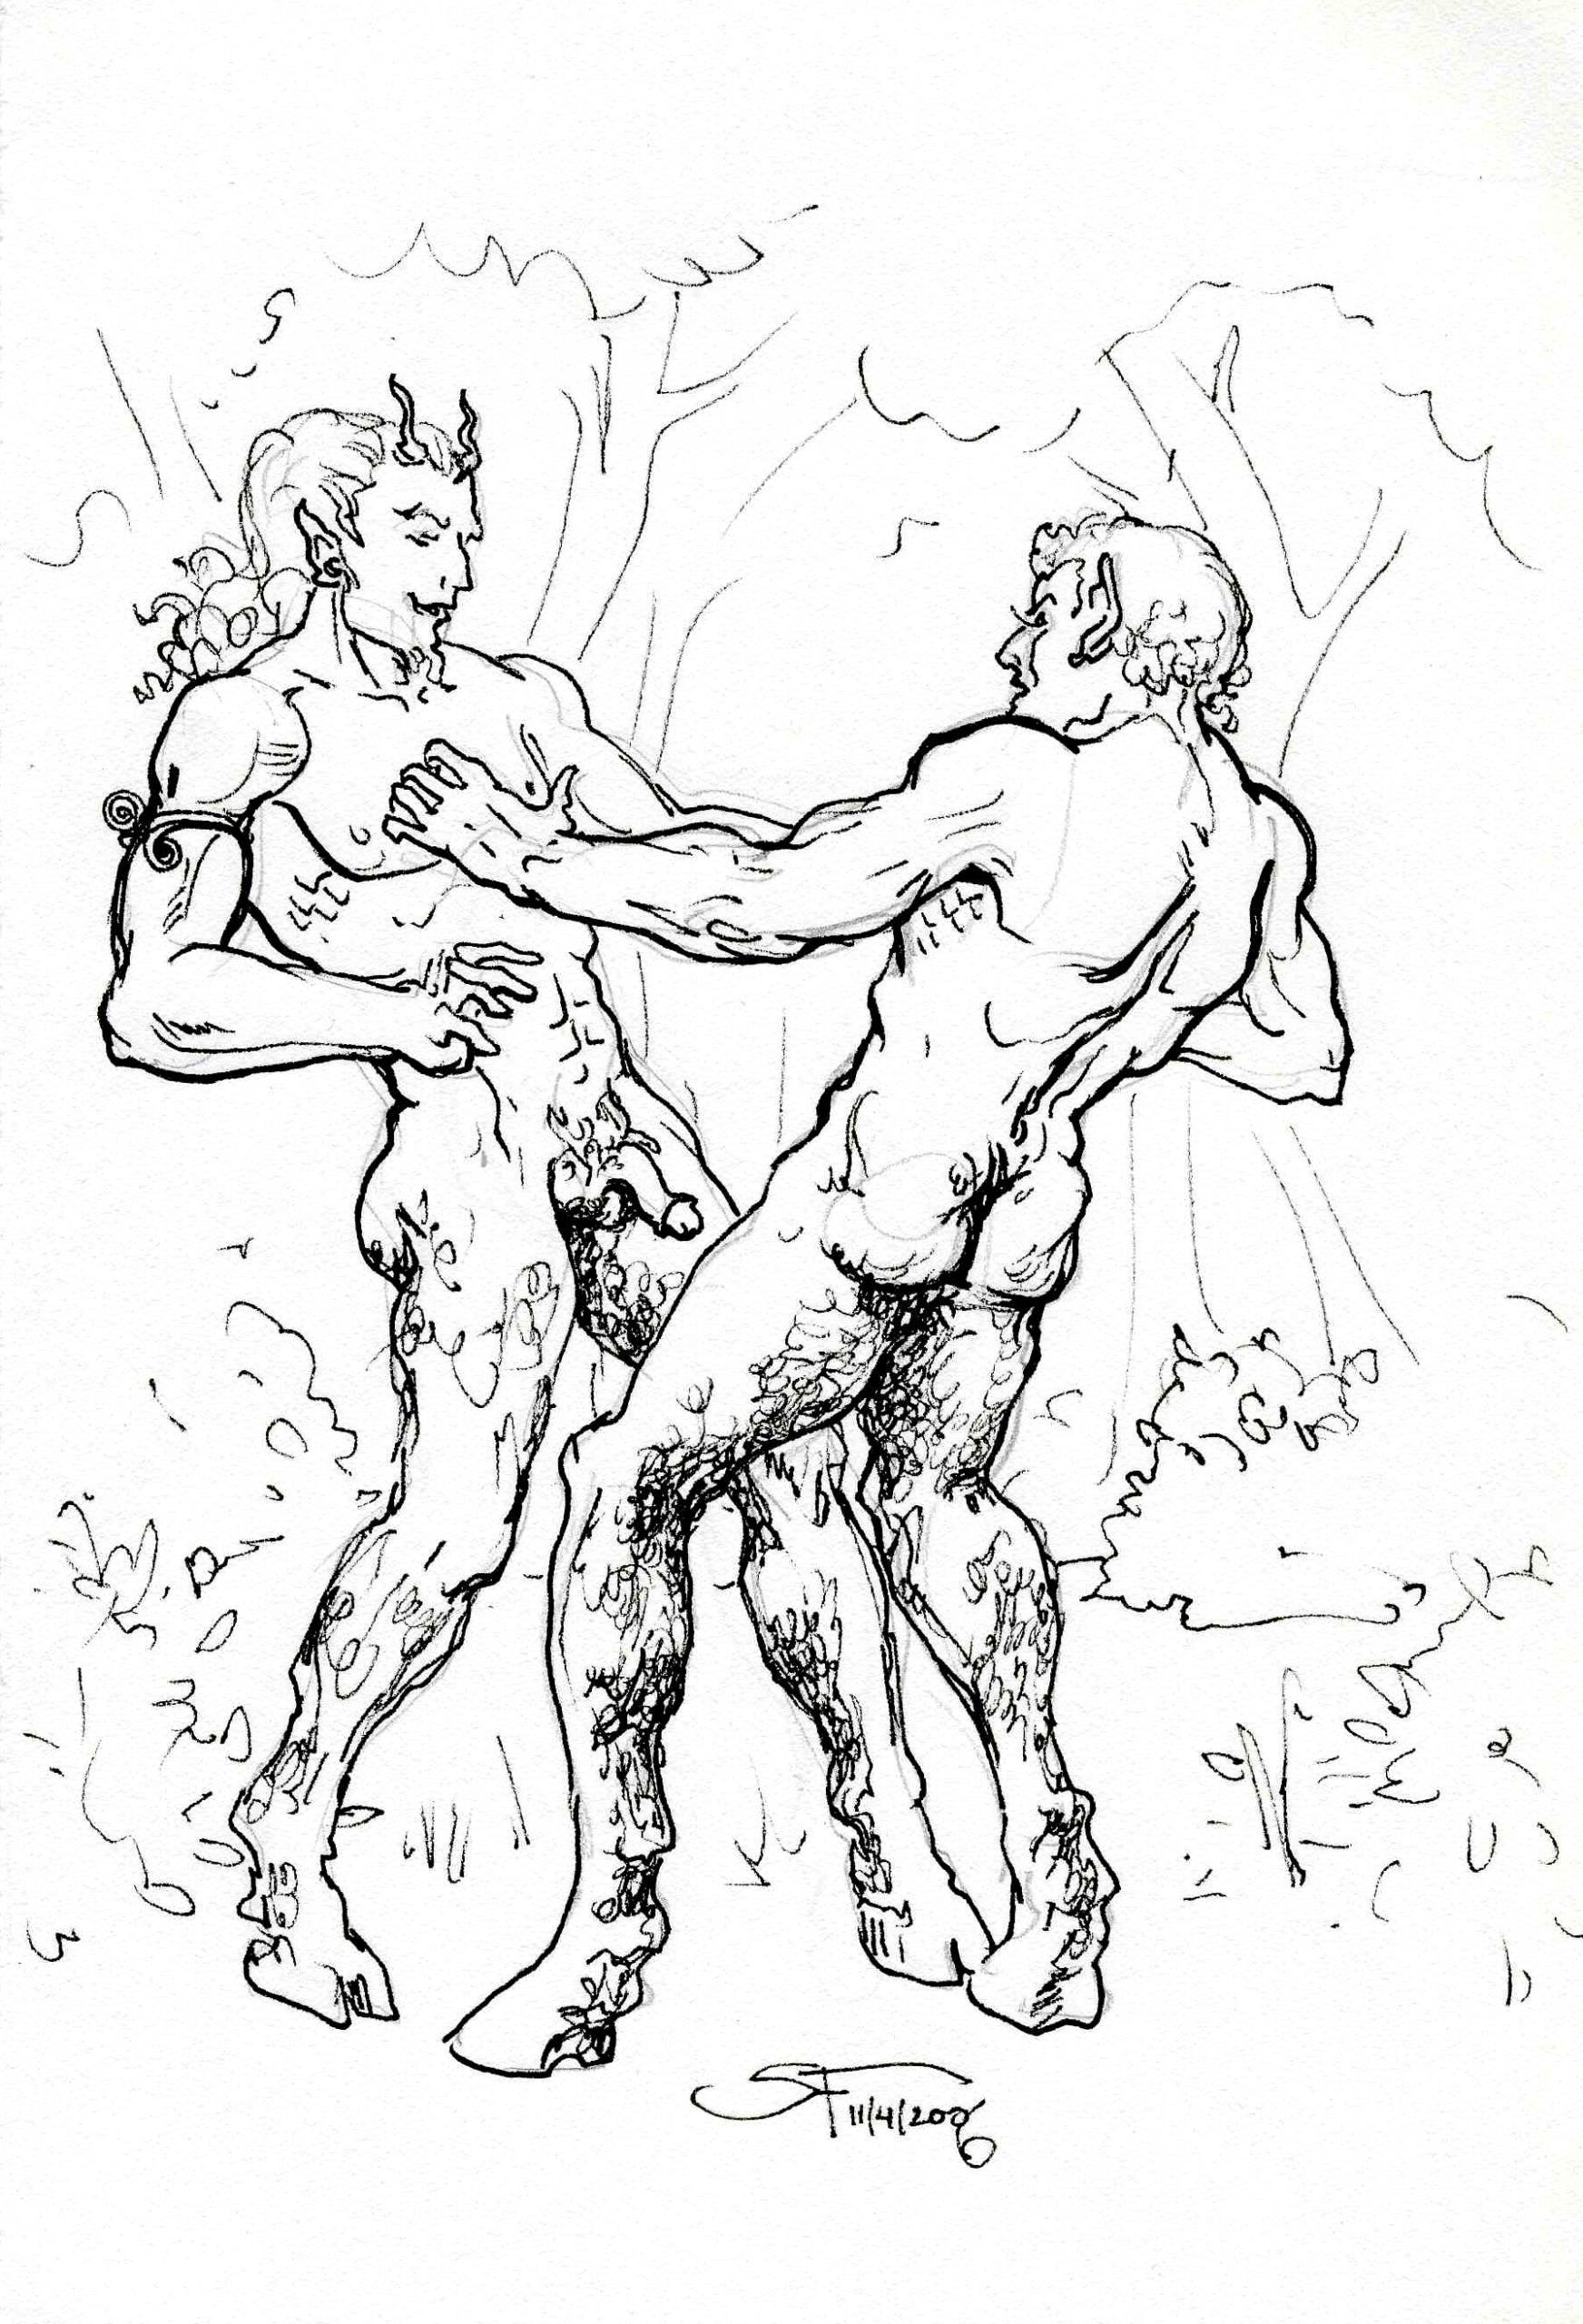 Naughty Fauns Frolicking 6x8 11 7 2006 by Suzanne Forbes